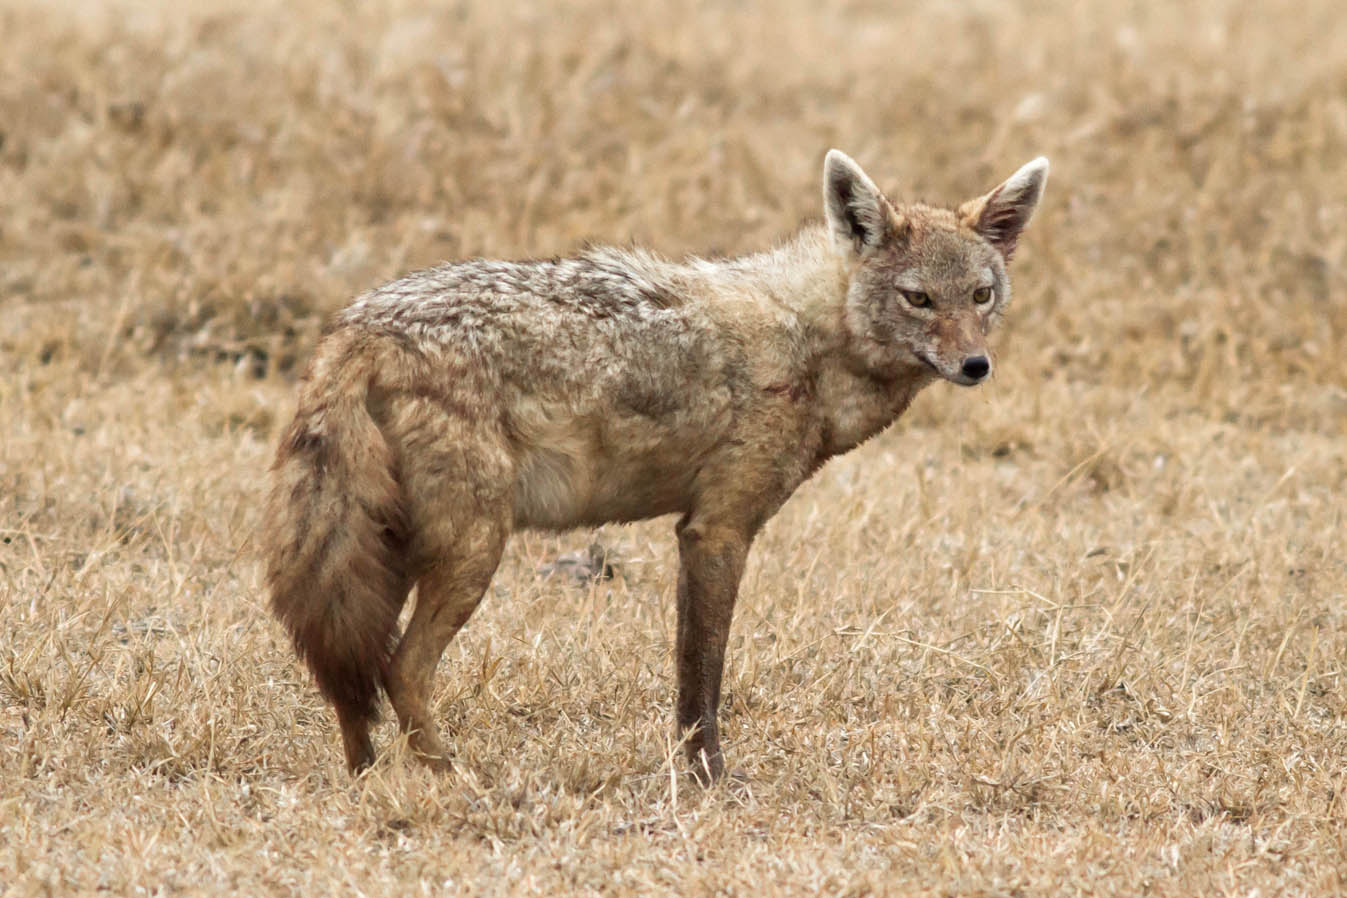 A Jackal at the Ngorongoro Conservation Area illustrates how modern cursorial canids look. (Credit: Daniel Montero López with Borja Figueirido)